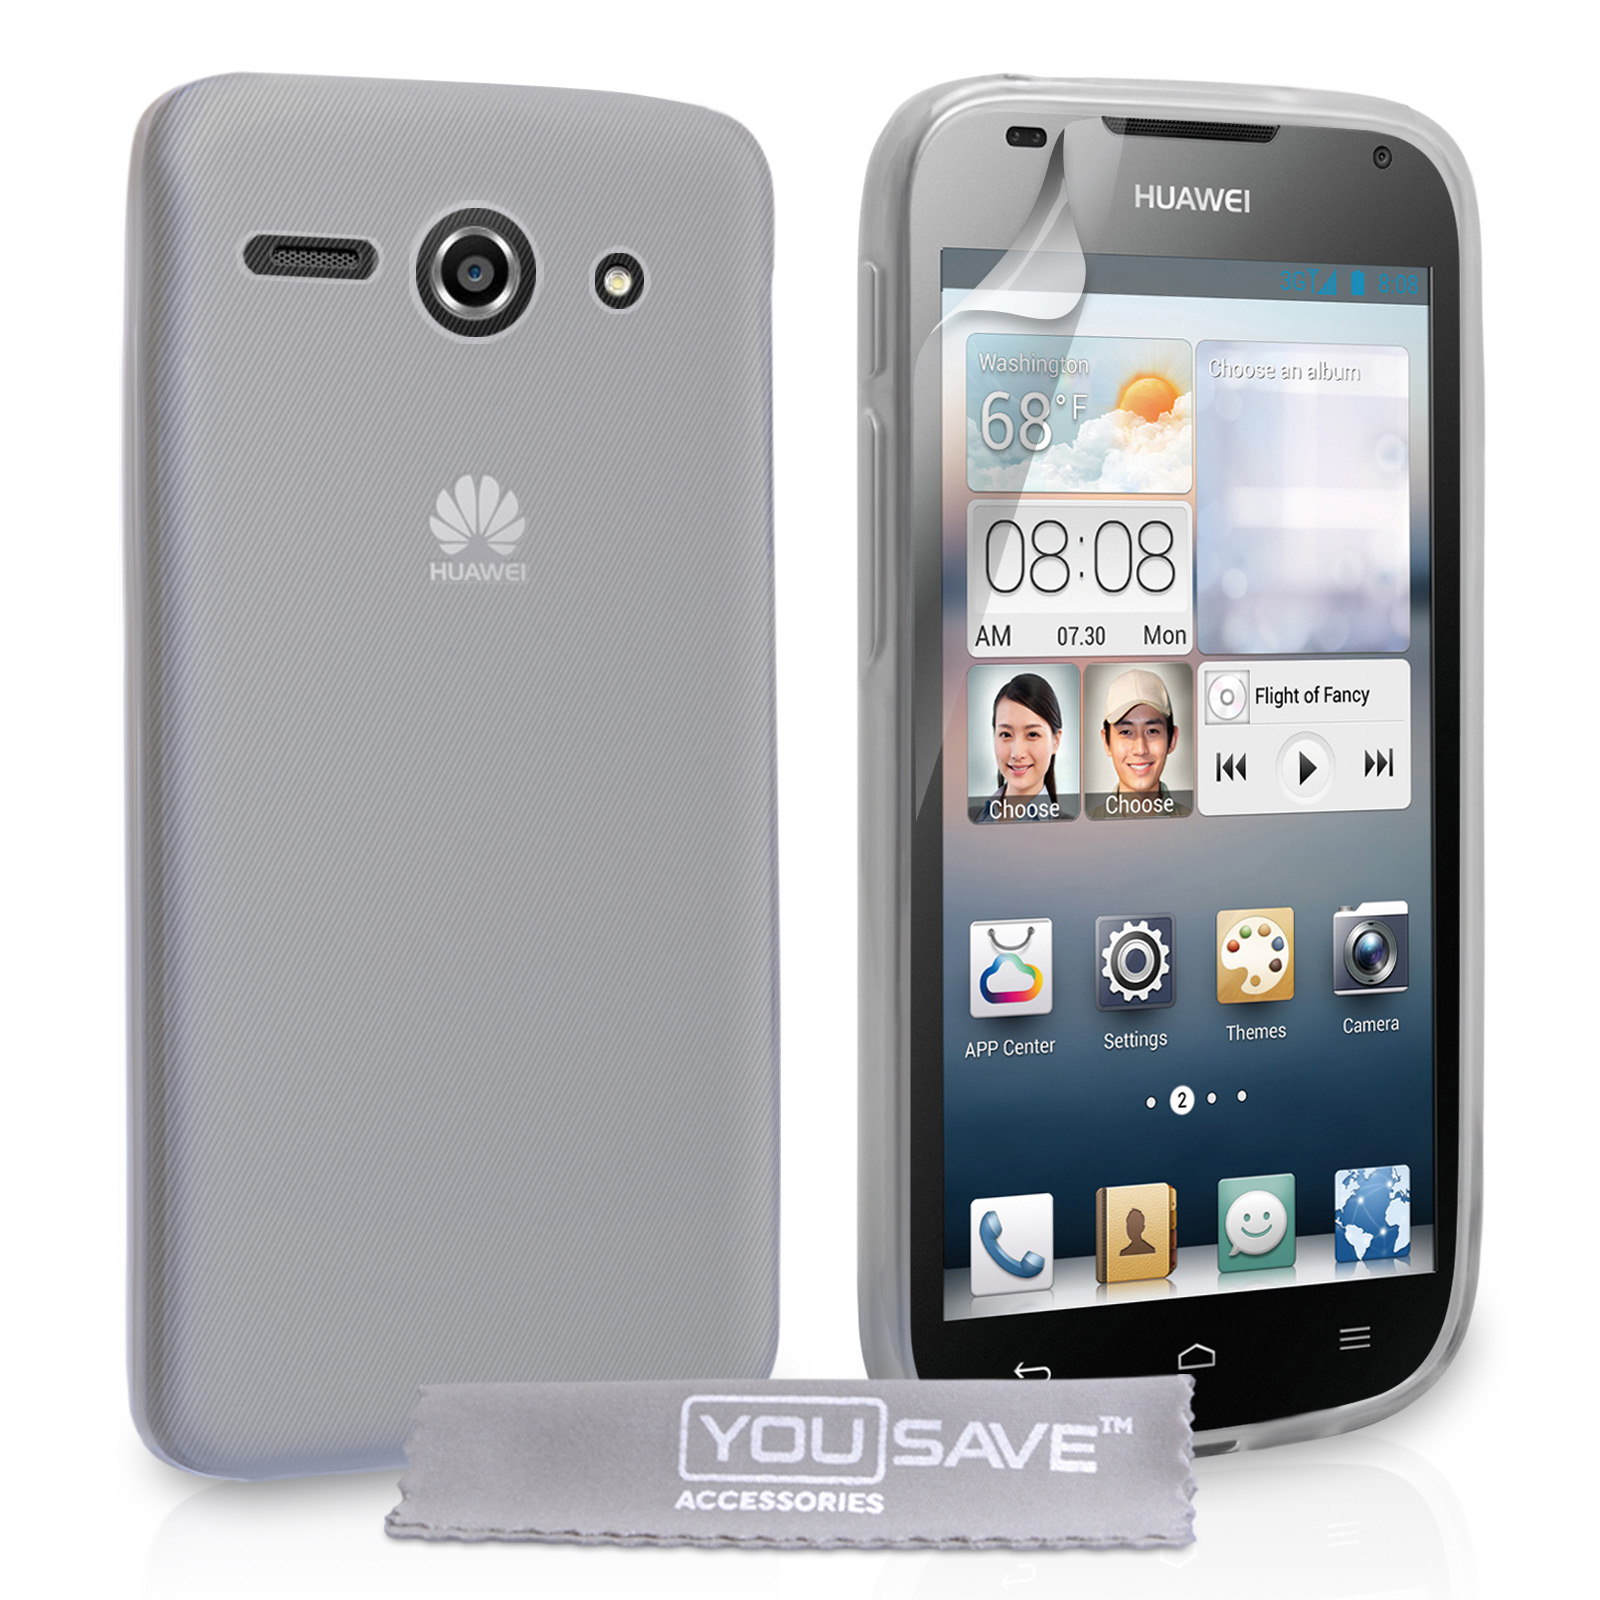 YouSave Accessories Huawei Ascend Y530 Silicone Gel Case - Clear